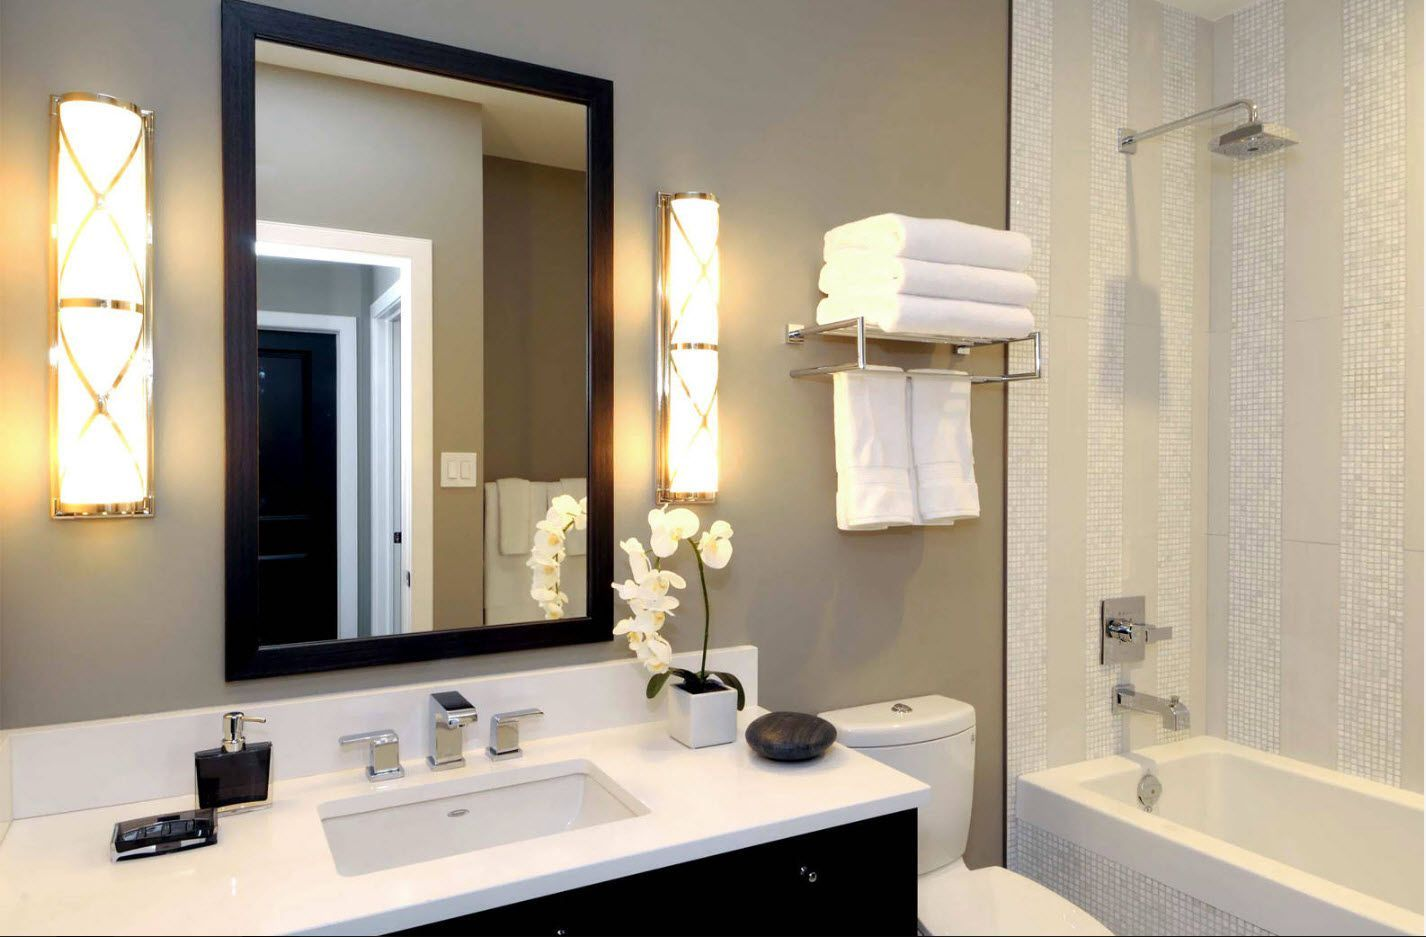 Gorgeous gray accent wall in the bathroom